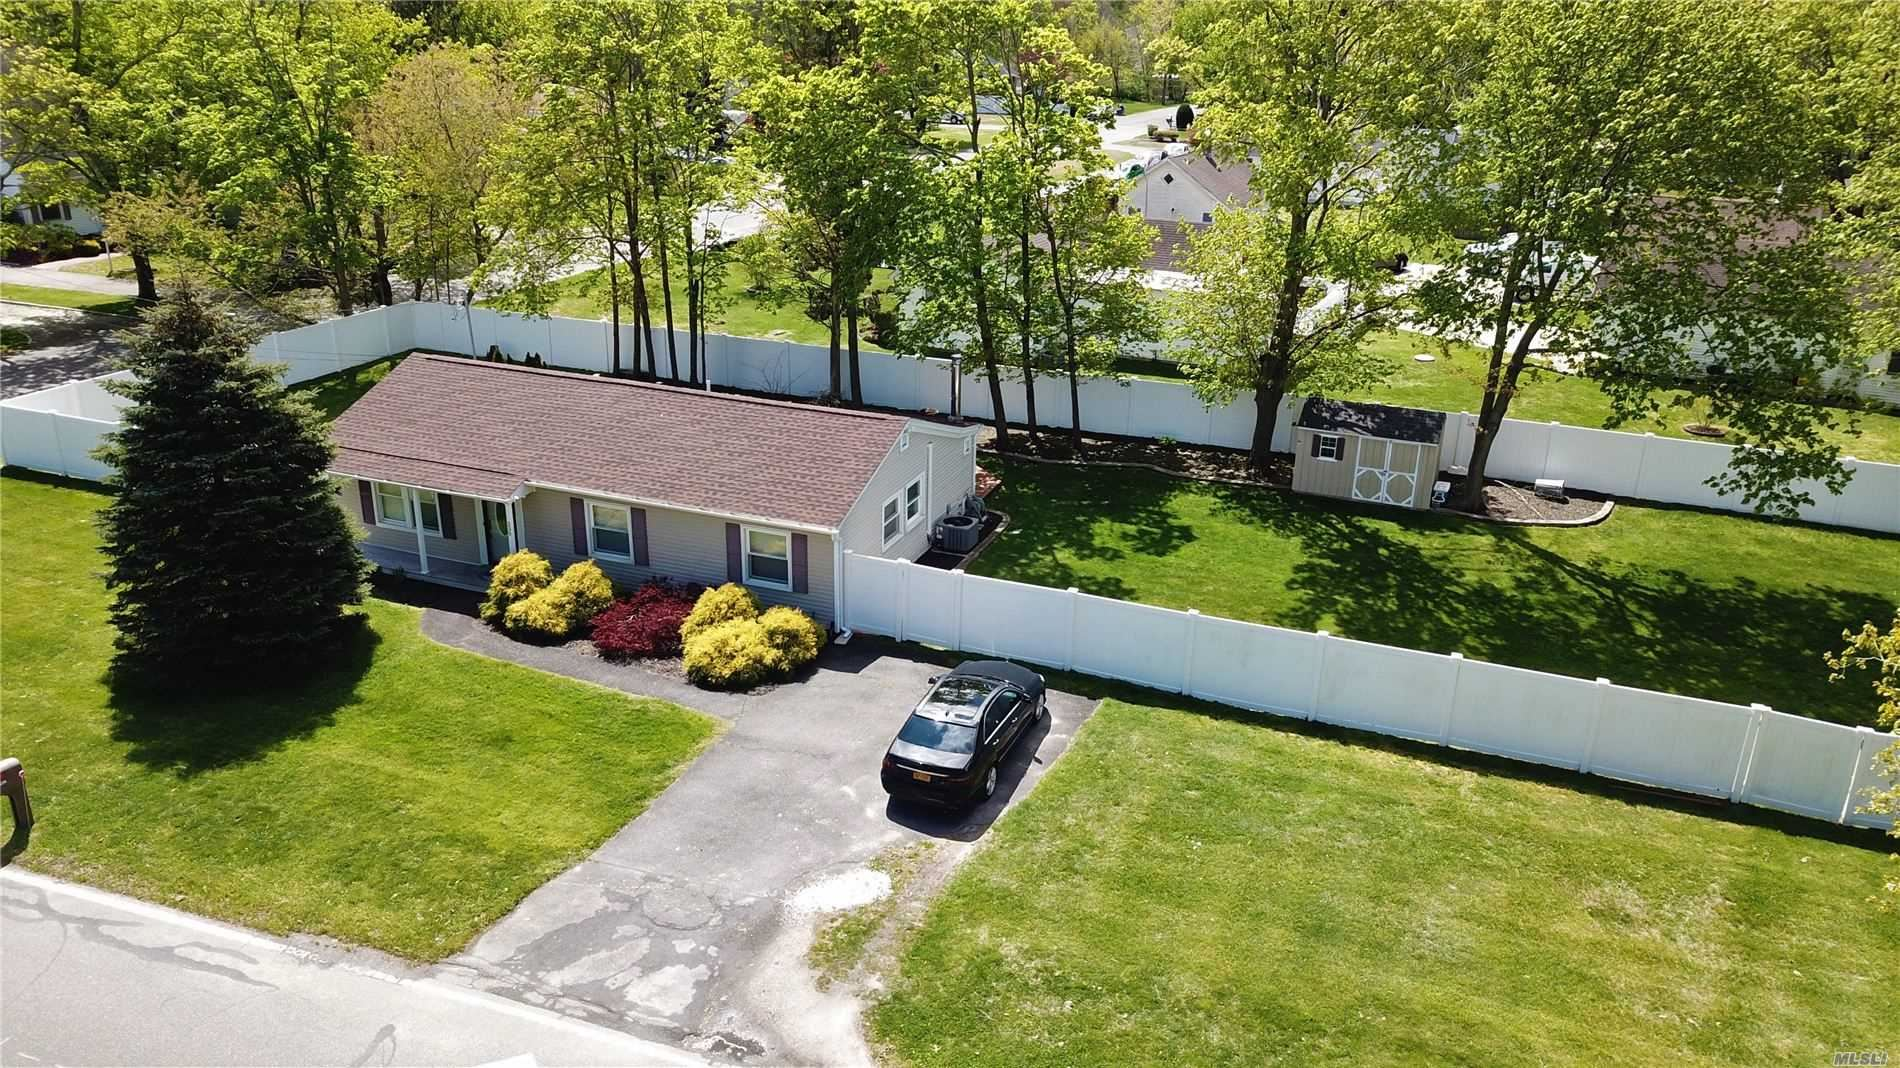 230 Frowein Road, Center Moriches, NY 11934 - MLS#: 3217130